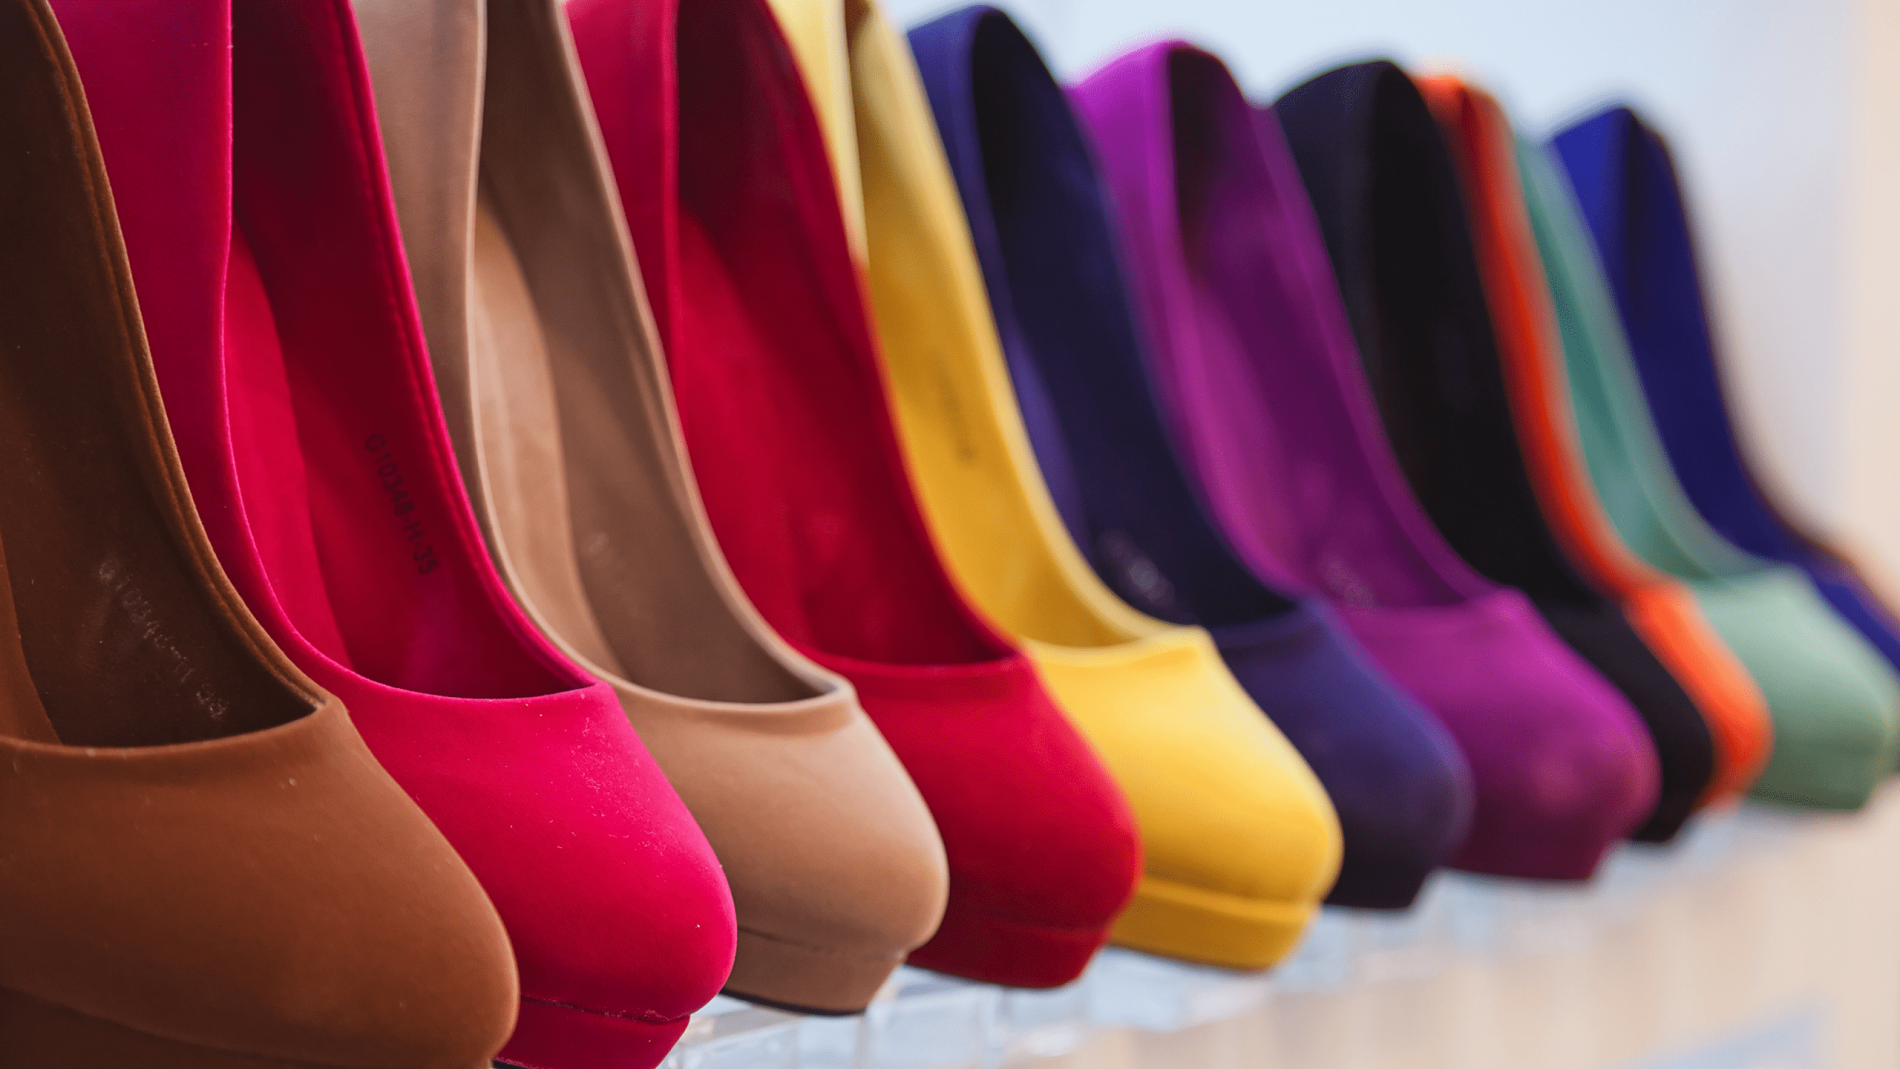 5 Great Home Shoe Storage Solutions From Our Current Range